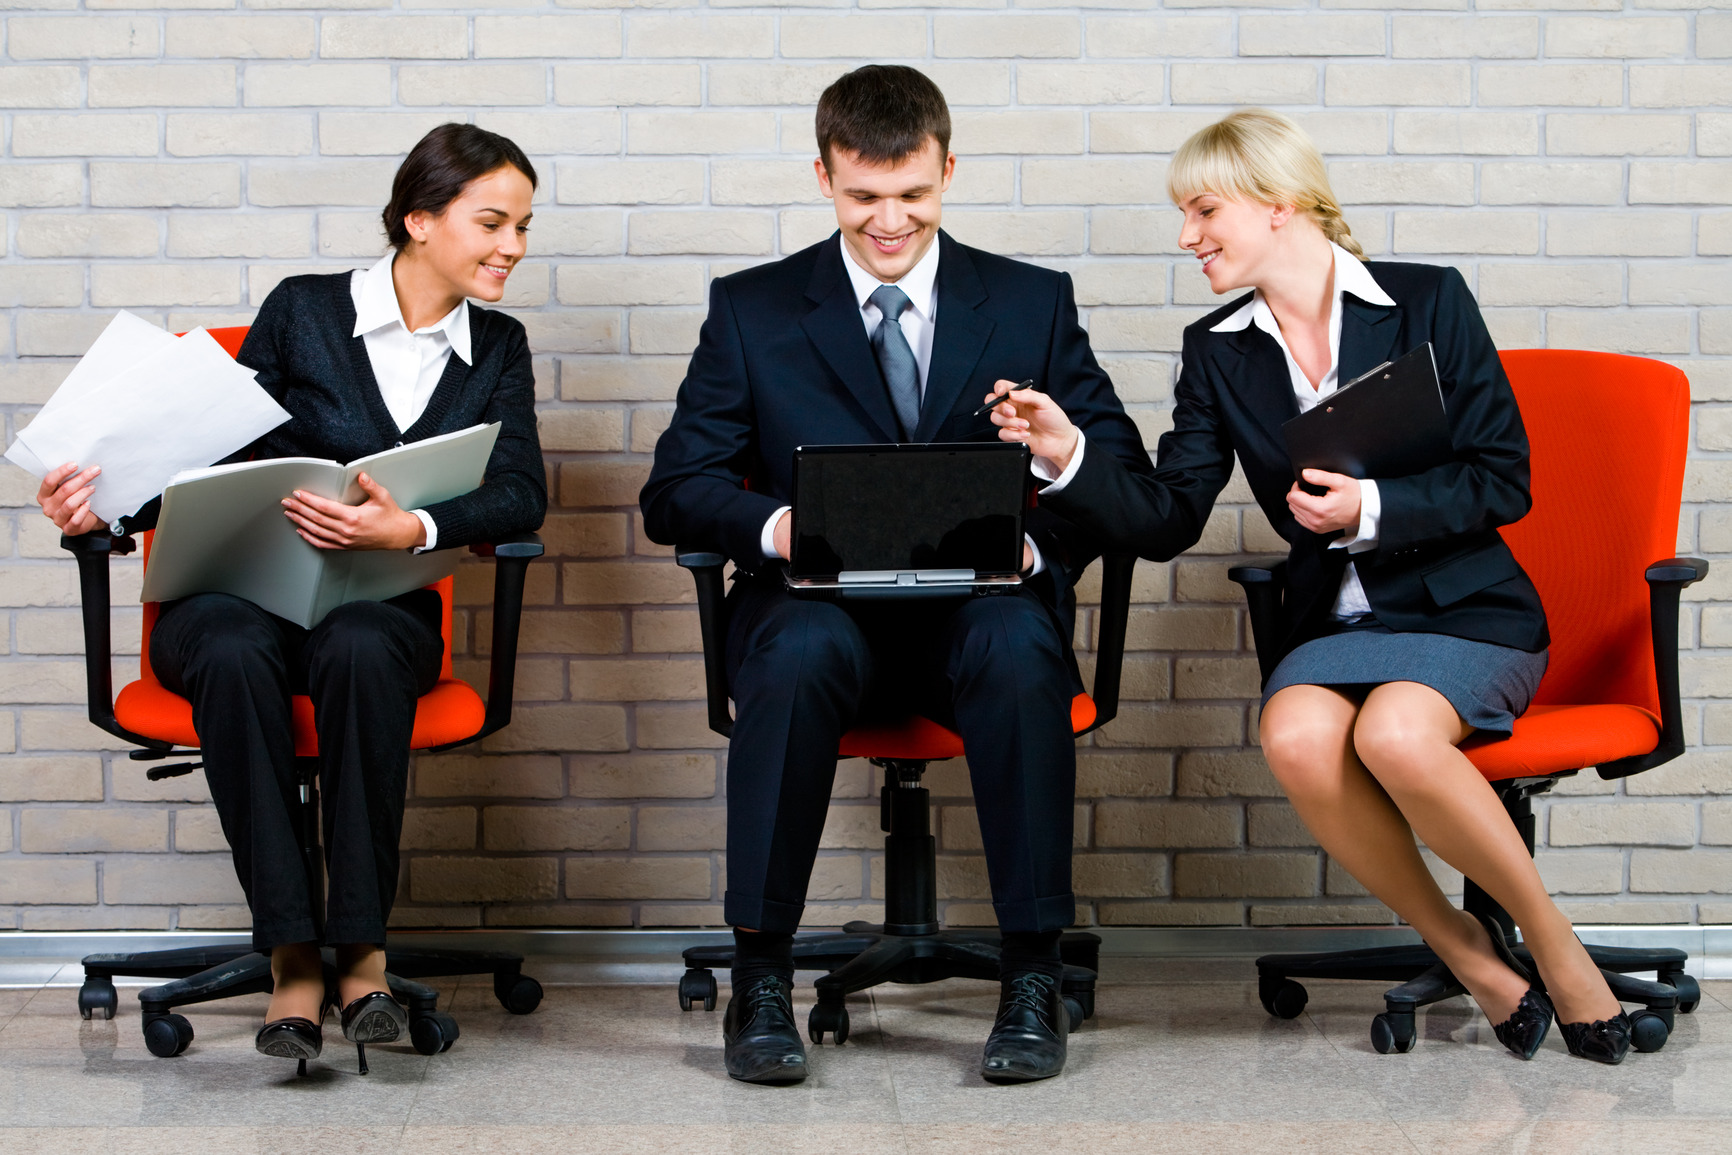 Image of business people sitting on the red armchairs and working on the background of brick wall